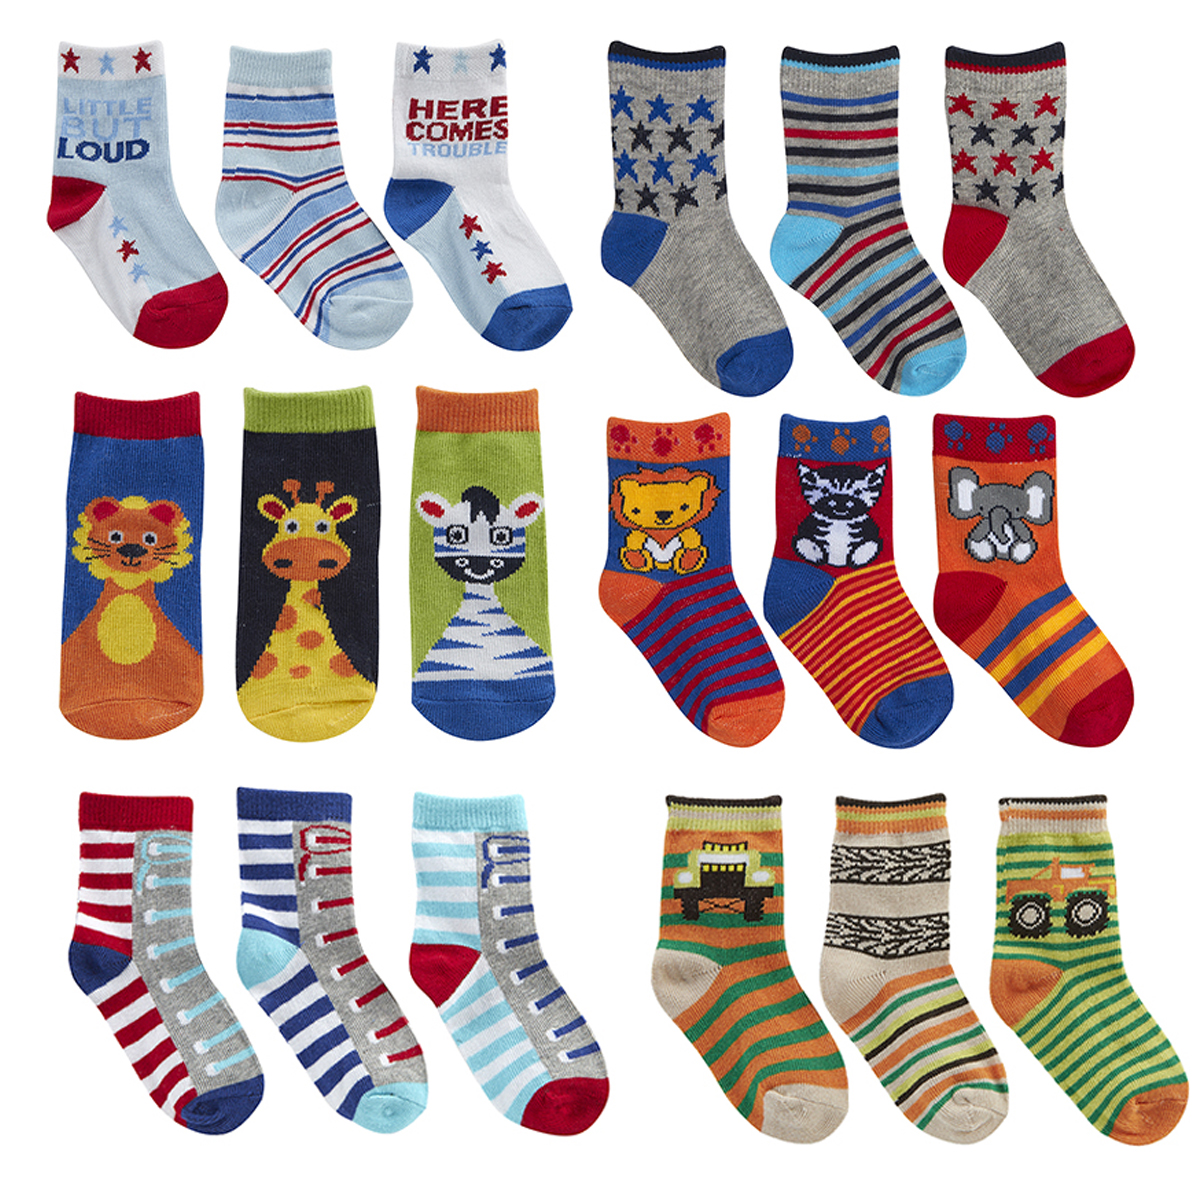 6 Pairs Baby Babies Girls Design Socks Cotton Rich Fun Animals Cute By TickTock